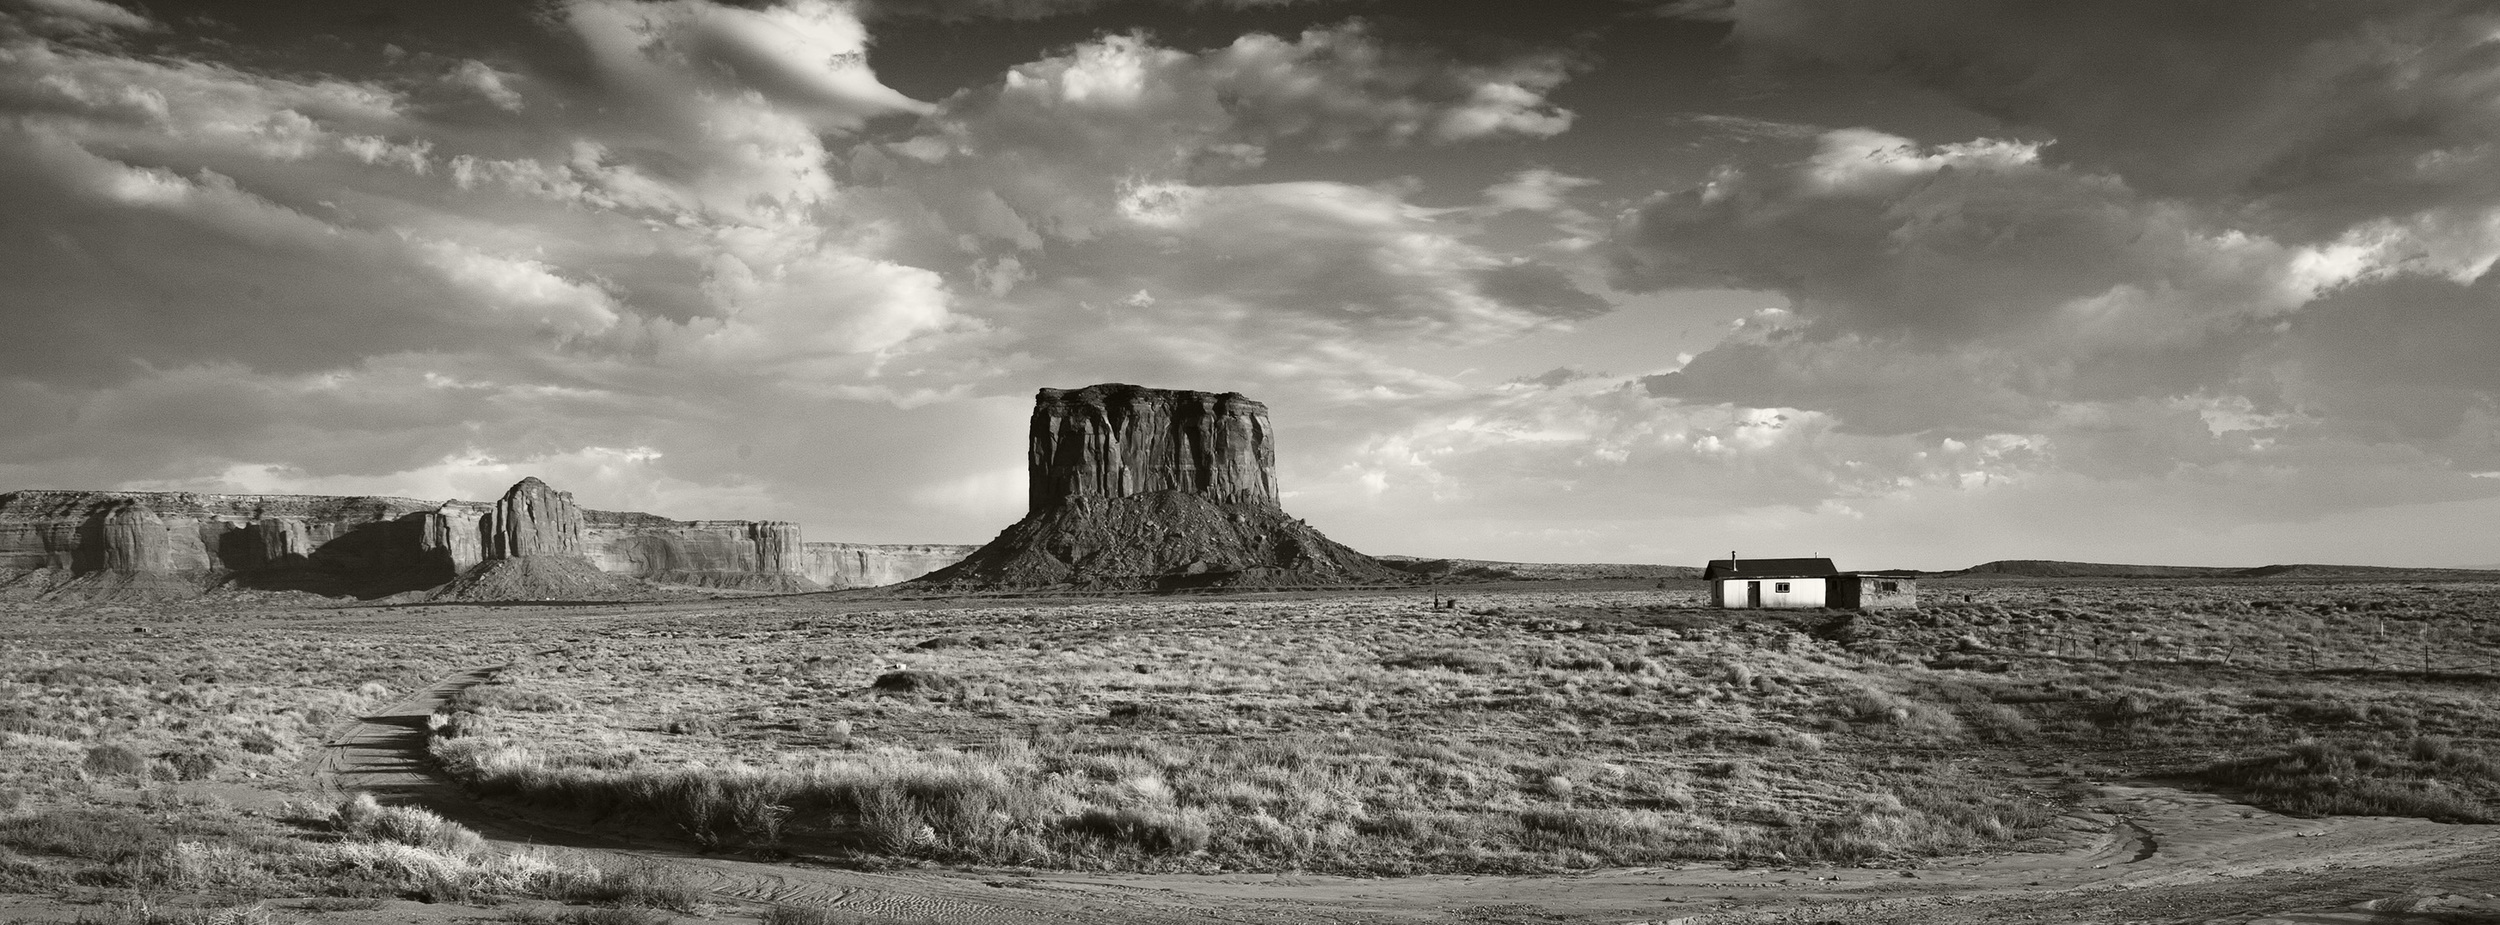 Monument Valley East